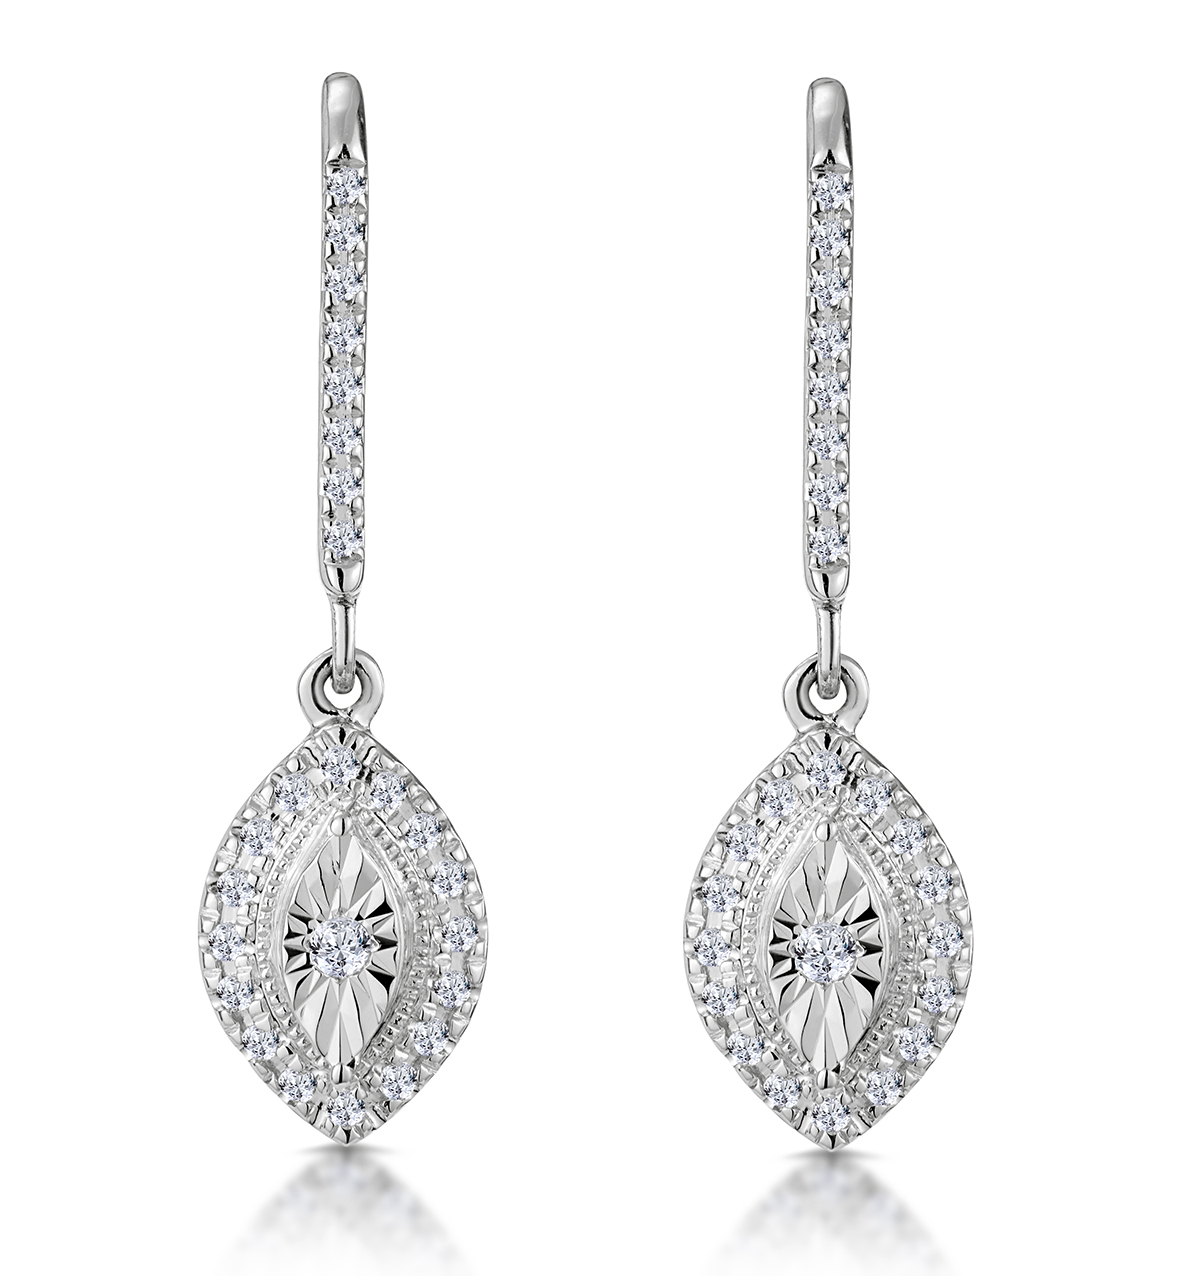 MASAMI DIAMOND MARQUISE EARRINGS 0.20CT PAVE SET IN 9K WHITE GOLD